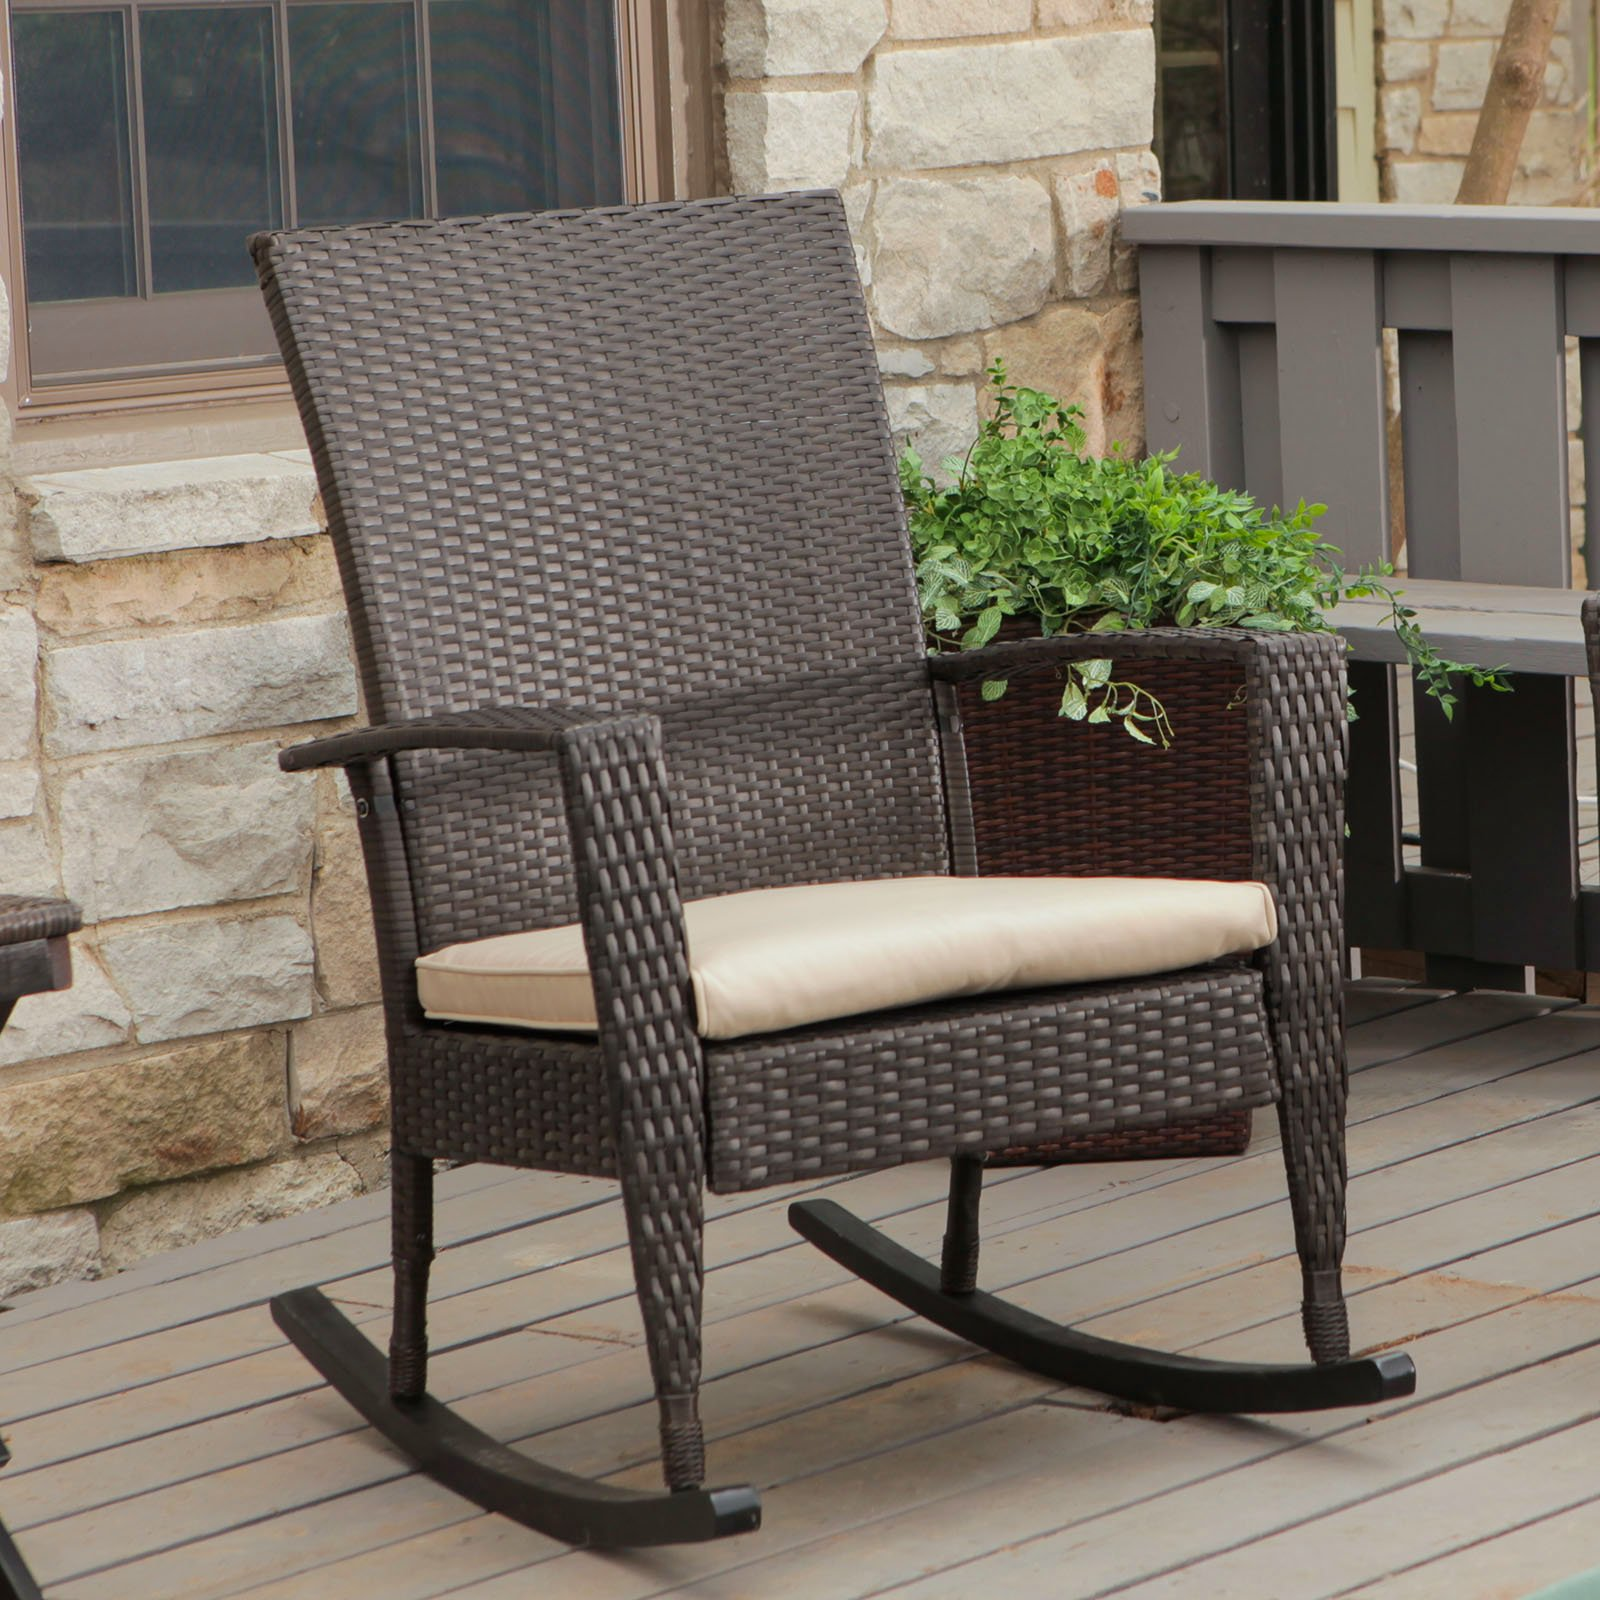 Image of: Outdoor Wicker Rocking Chairs Design